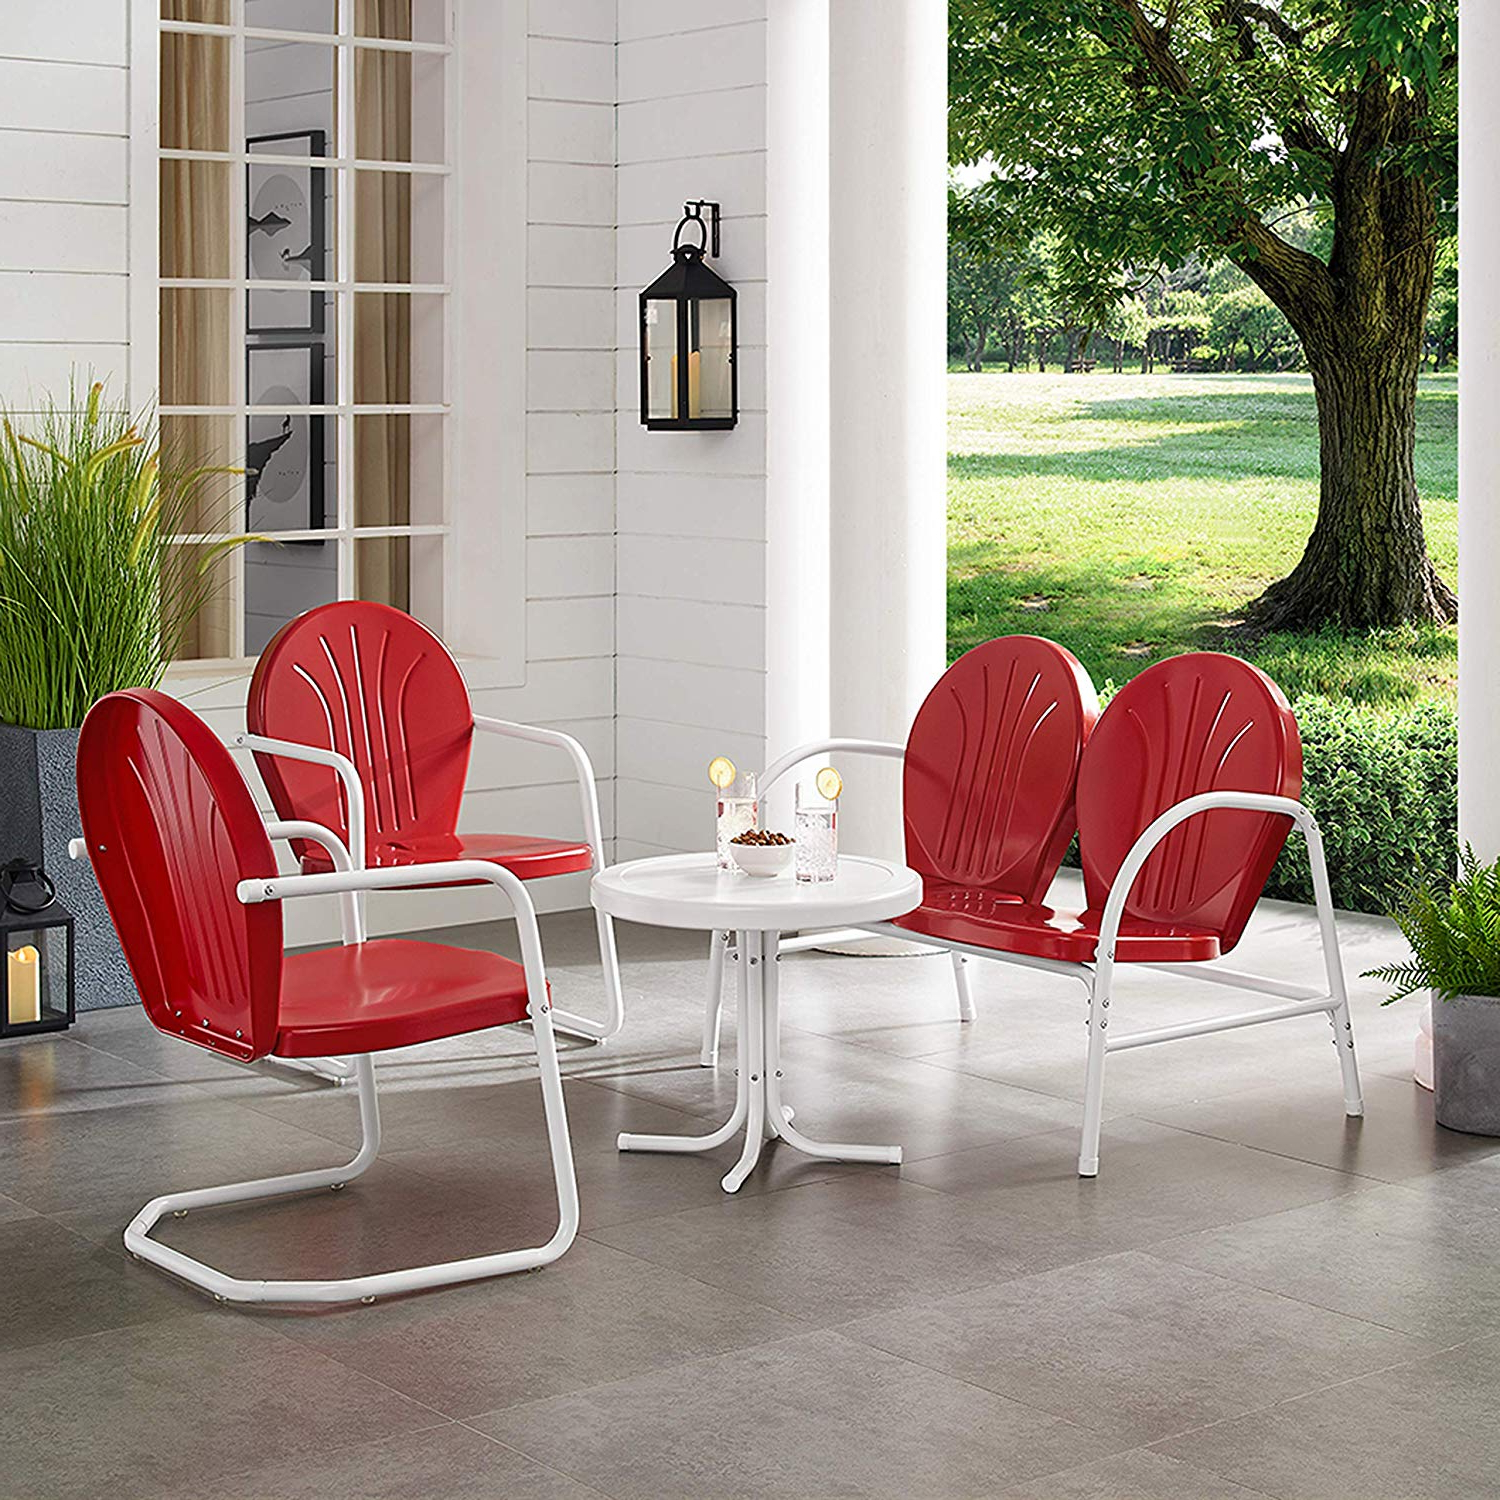 Crosley Furniture Griffith 4 Piece Metal Outdoor Conversation Set With  Table, Loveseat, And 2 Chairs – Red With Regard To Well Known Bate Red Retro 3 Piece Dining Sets (Gallery 7 of 20)